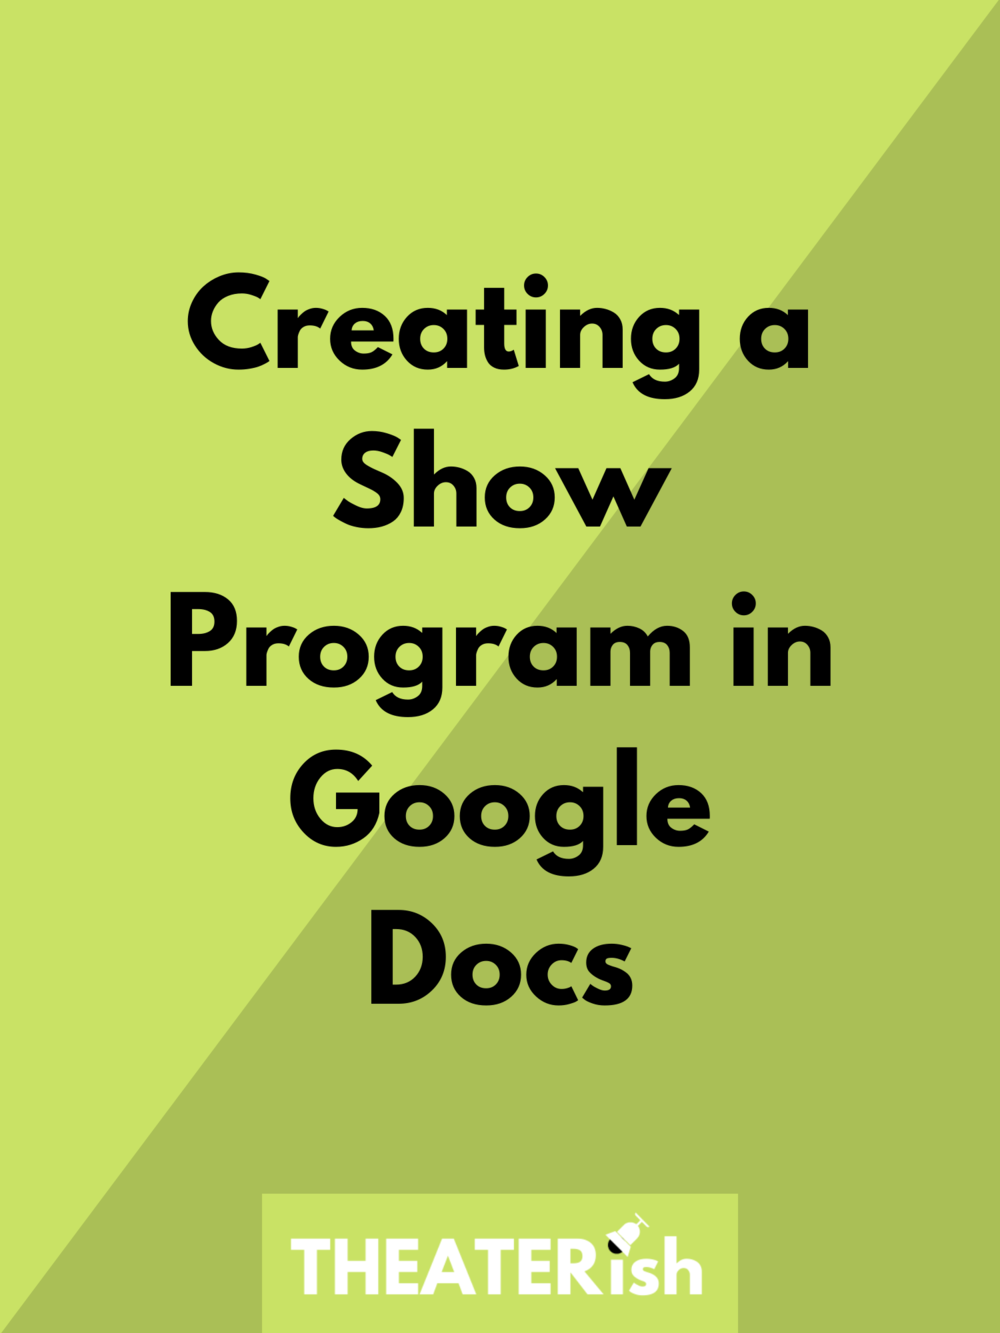 Book Cover Making Program : How to create a show program in google docs — theaterish